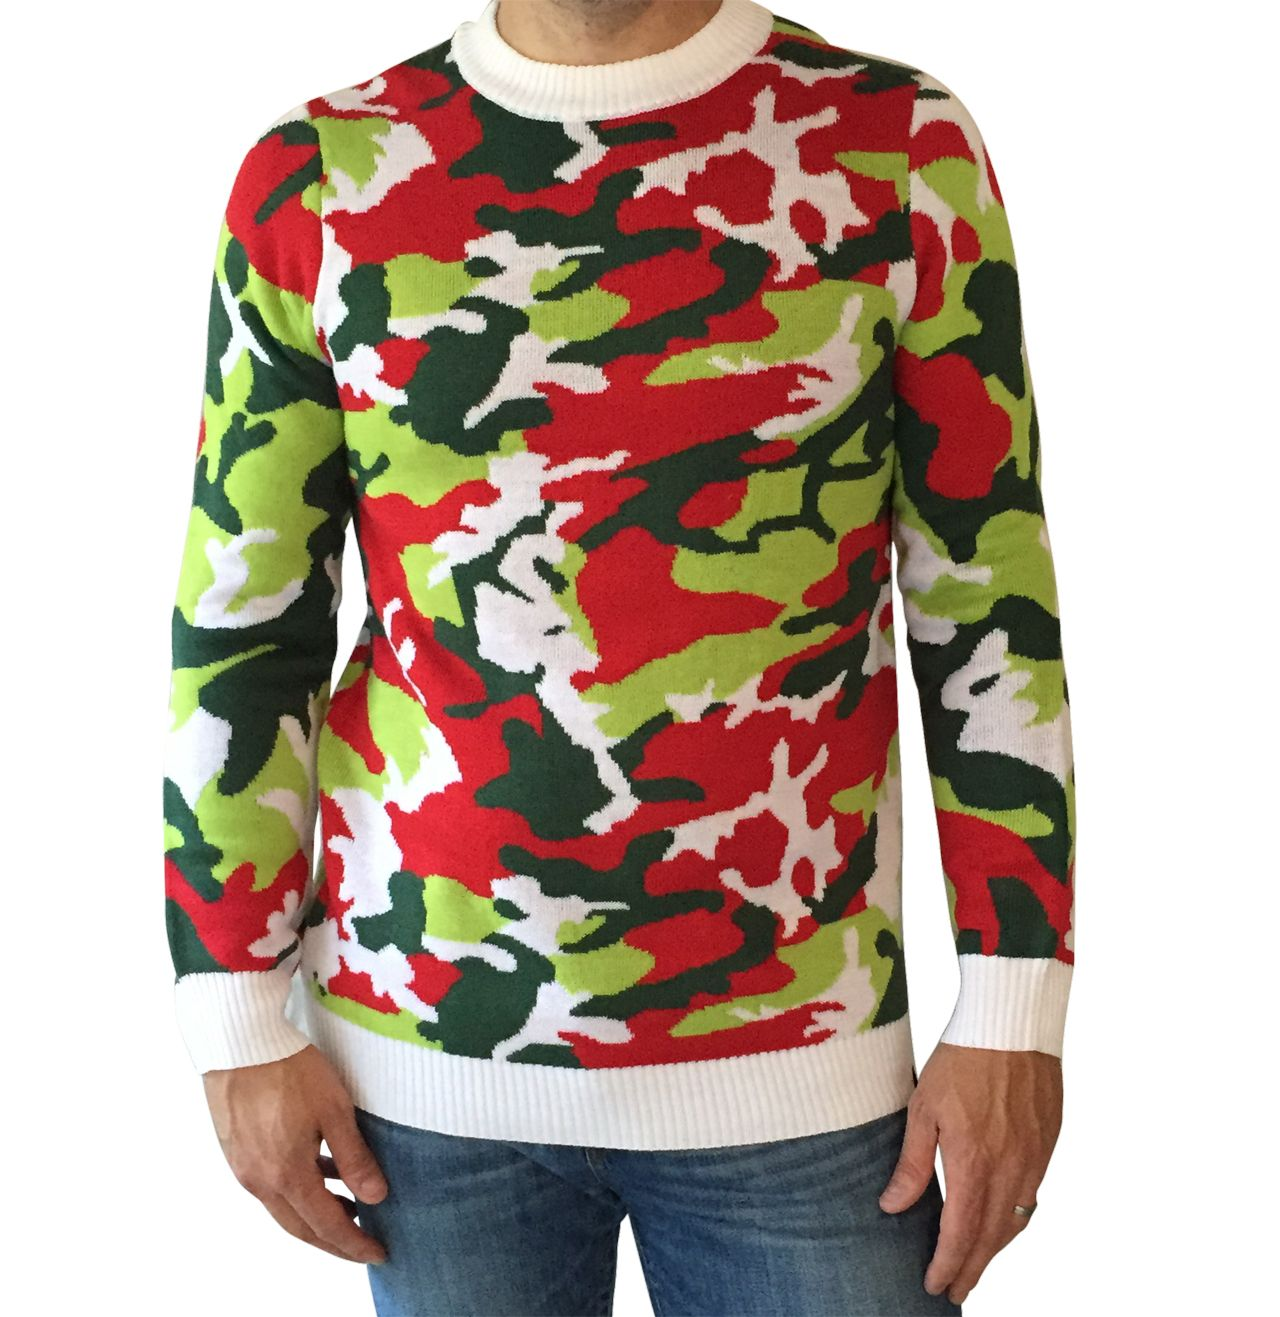 Pin on 'New' Christmas Sweaters